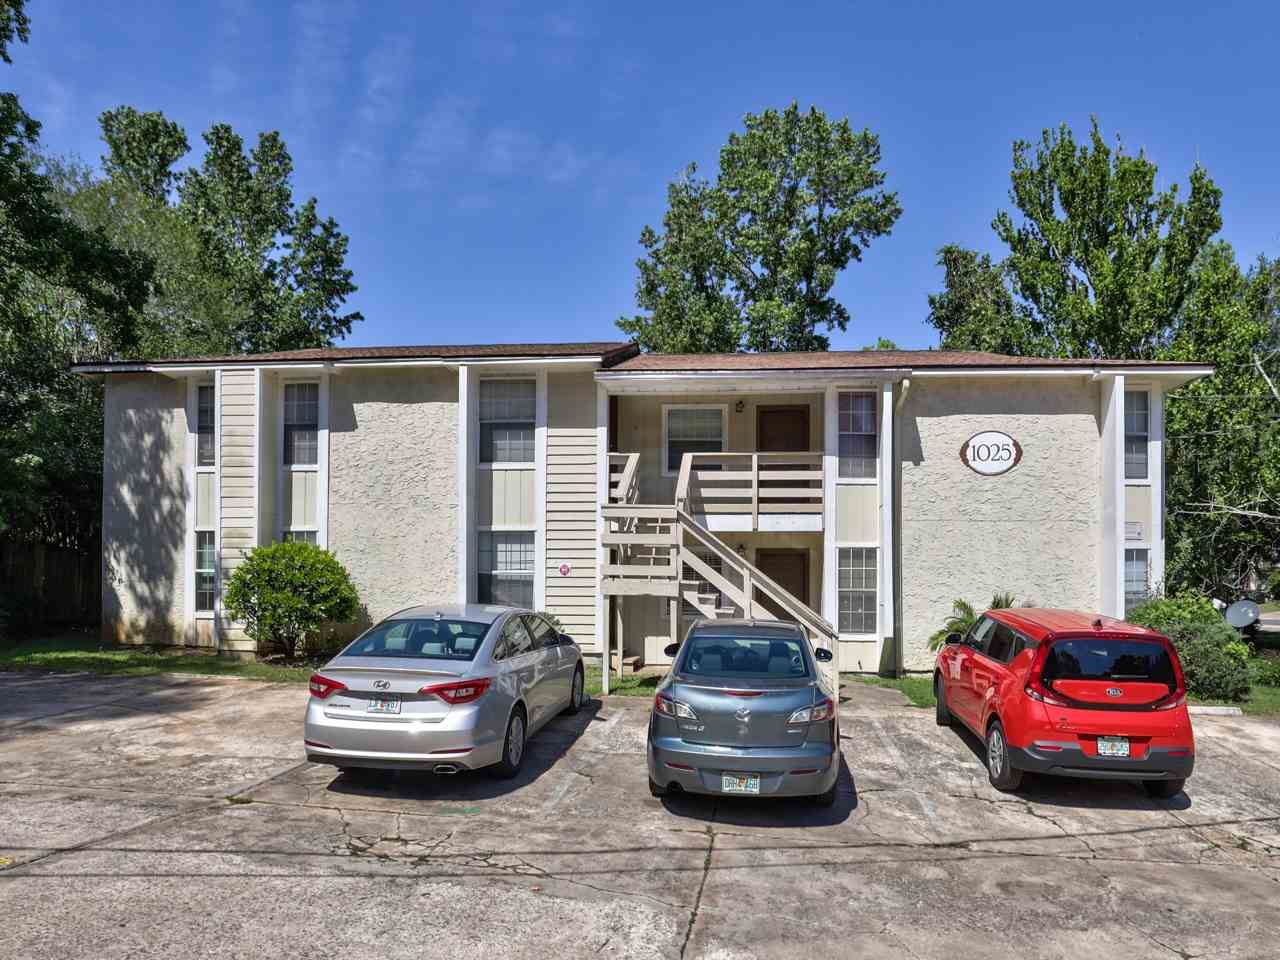 Photo for 1025 & 1031 Crossing Brook Way #B, TALLAHASSEE, FL 32311 (MLS # 318297)